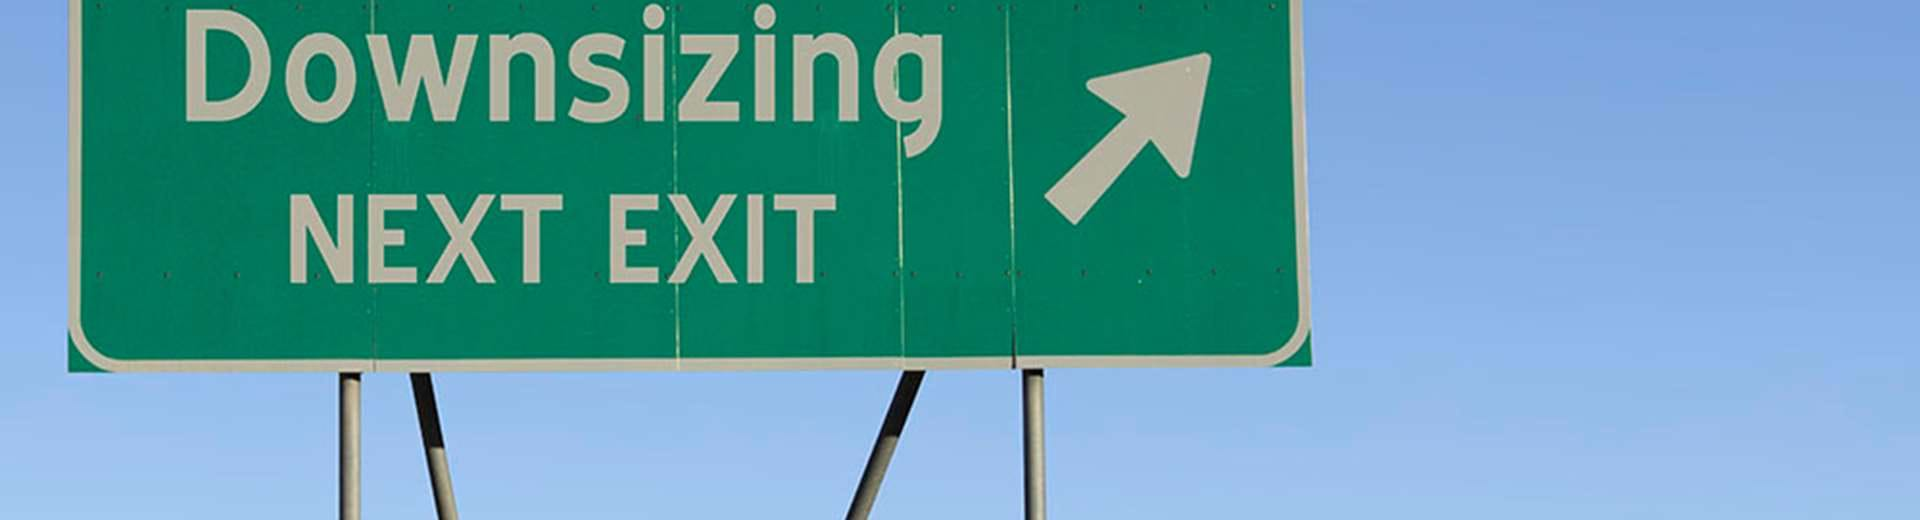 "There is a green street sign that says ""downsizing next exit"" while pointing to the right."